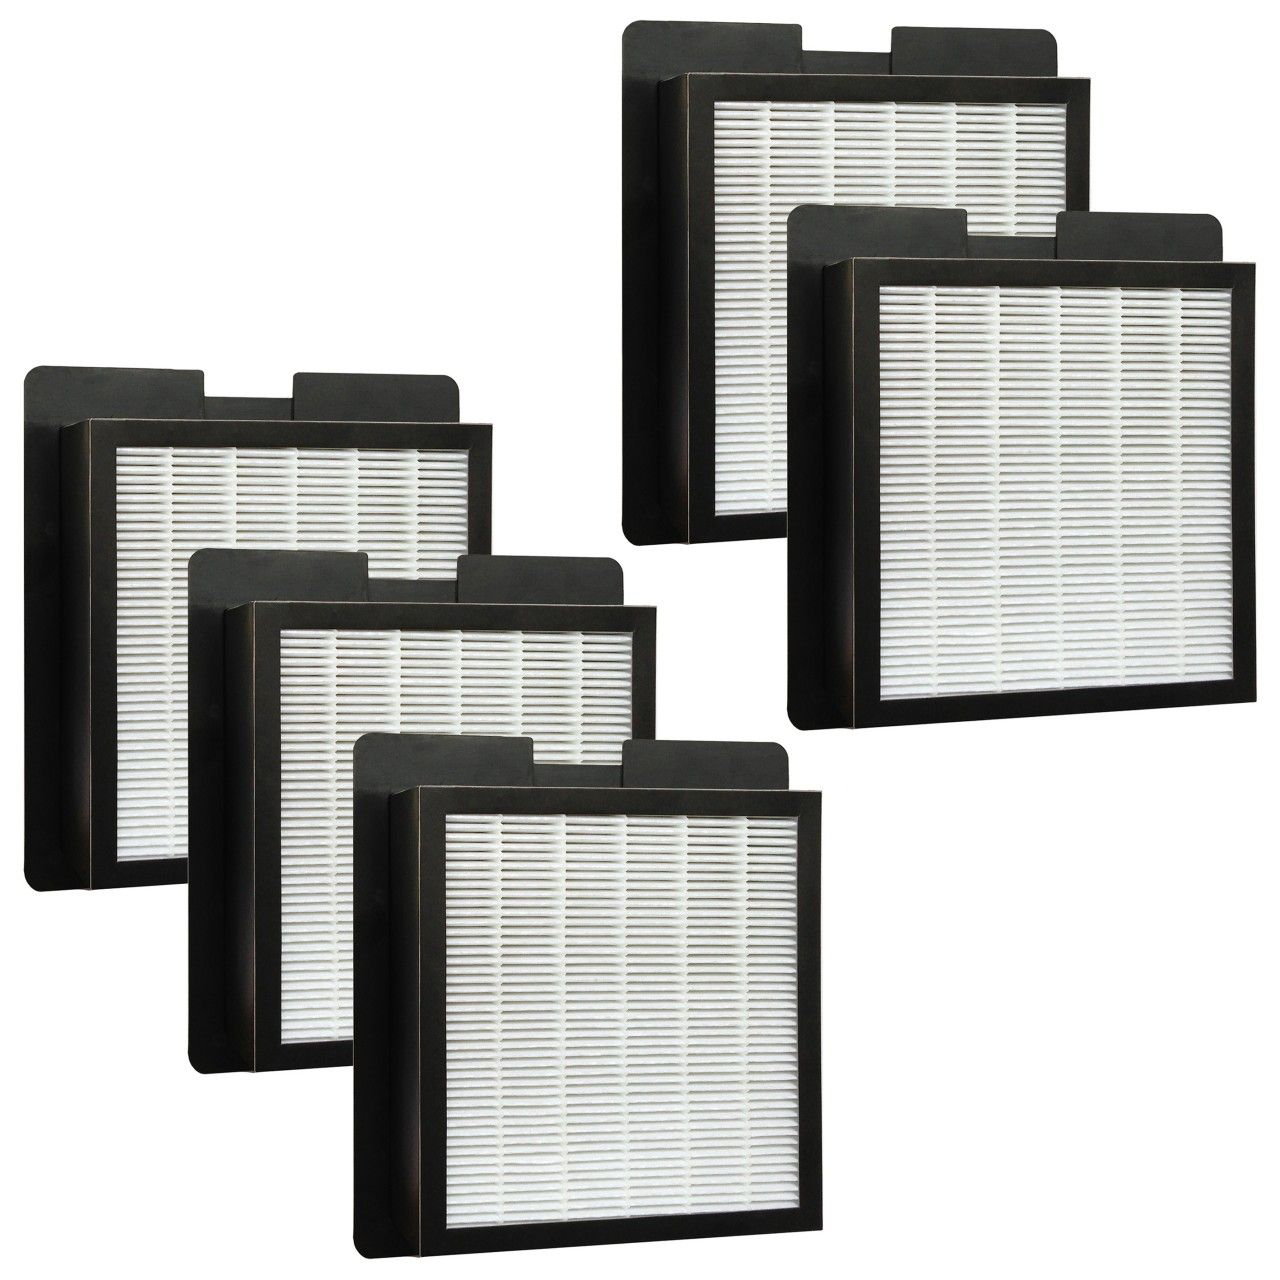 Get advanced Air Purifier repair USA services from these